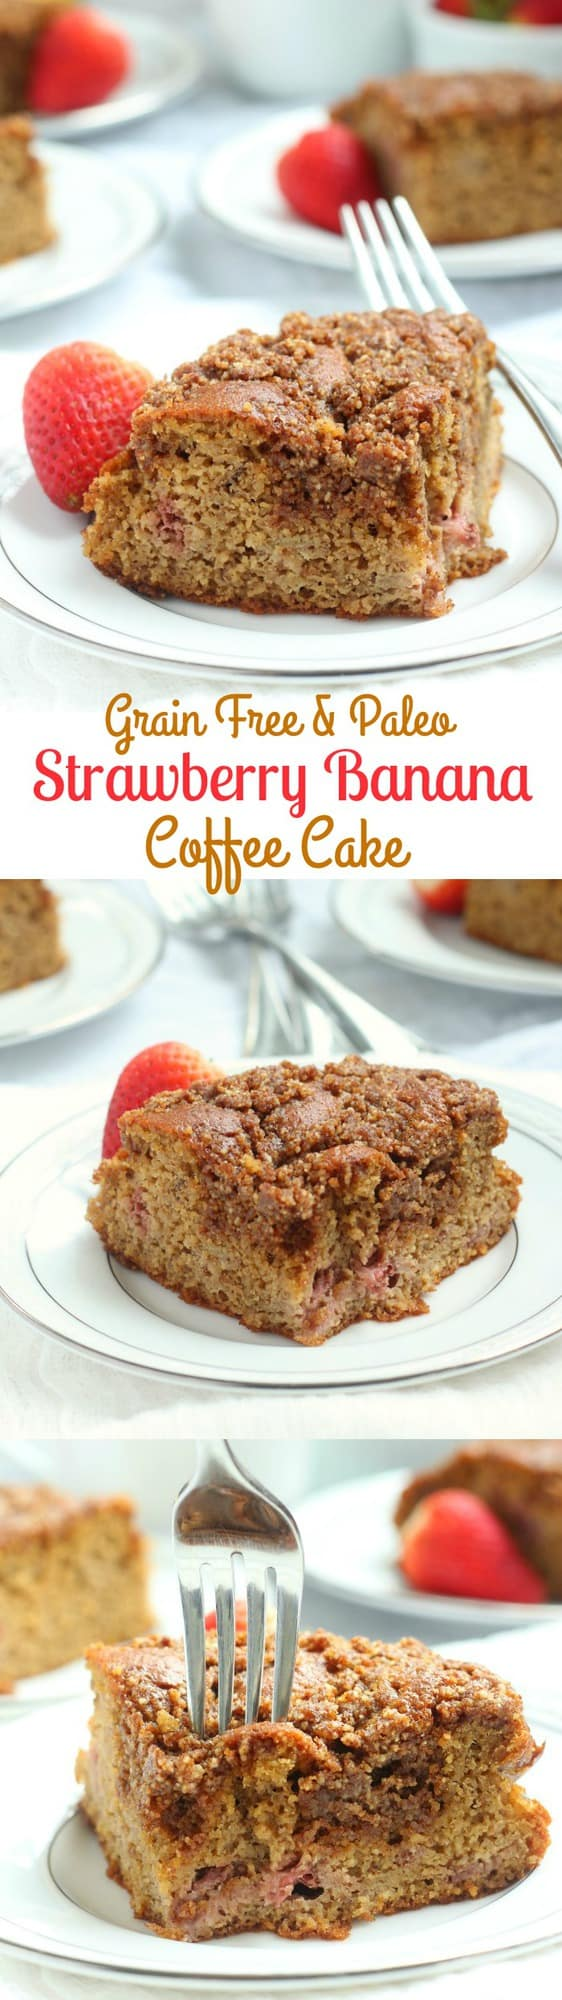 Strawberry Banana Coffee cake that's grain free, dairy free, Paleo with an incredible cinnamon crumb topping!